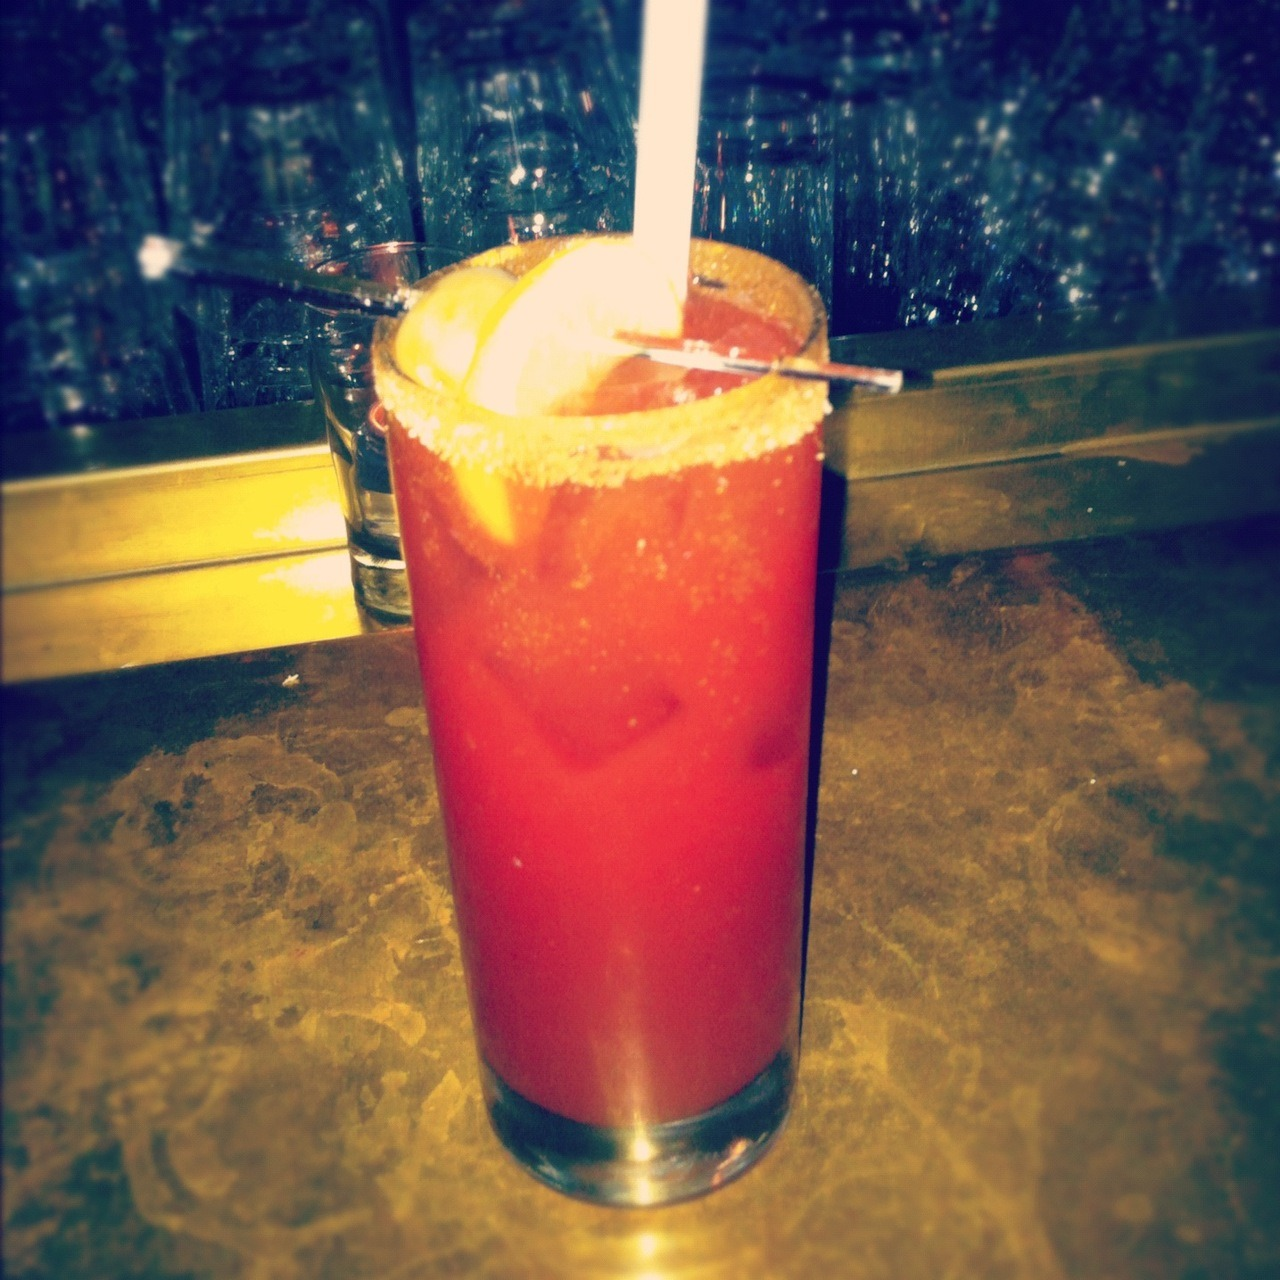 Bloody Caesar @ Furco 425, Mayor, Montreal ( Near Quartier des Spectacles) 6/10 Notes : Well, I had to go to Furco. Because everybody goes to Furco. It's the new thing in town. Rad place. Will definitively go back, but not for the Bloody Caesar. It was ok. No more than that. But the view was lovely - and by the view I mean the crowd - so I didn't really care.